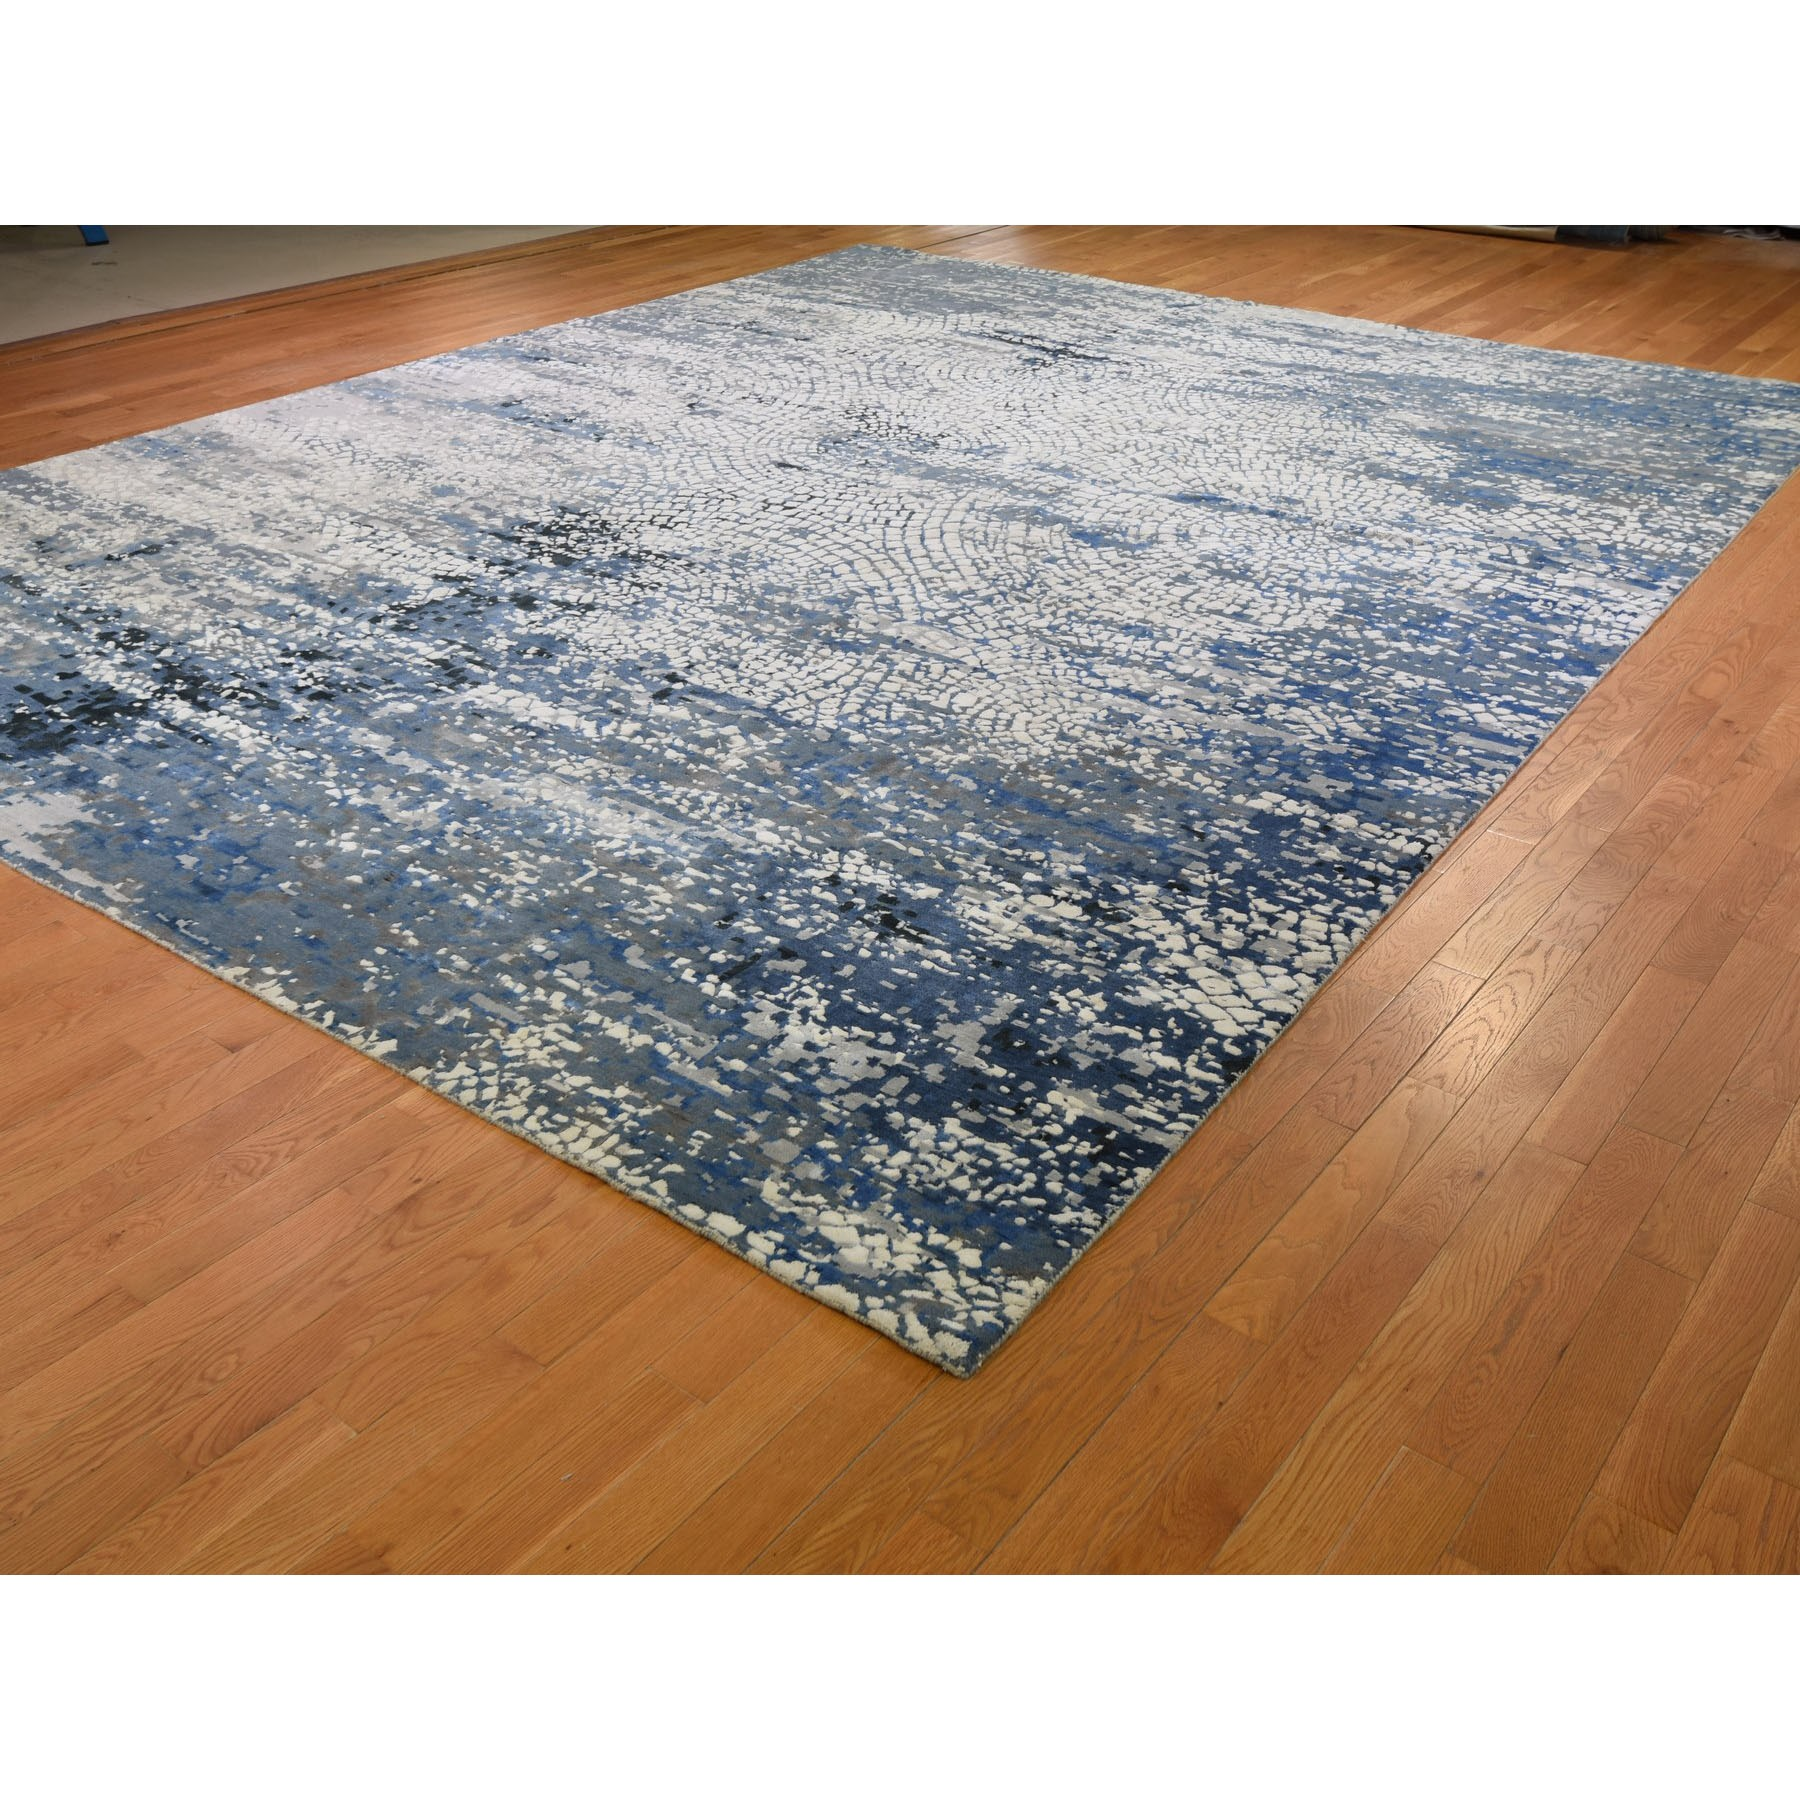 12-x15-1  Oversized Blue Wool And Pure Silk Erased Roman Mosaic Design hand Knotted Oriental Rug